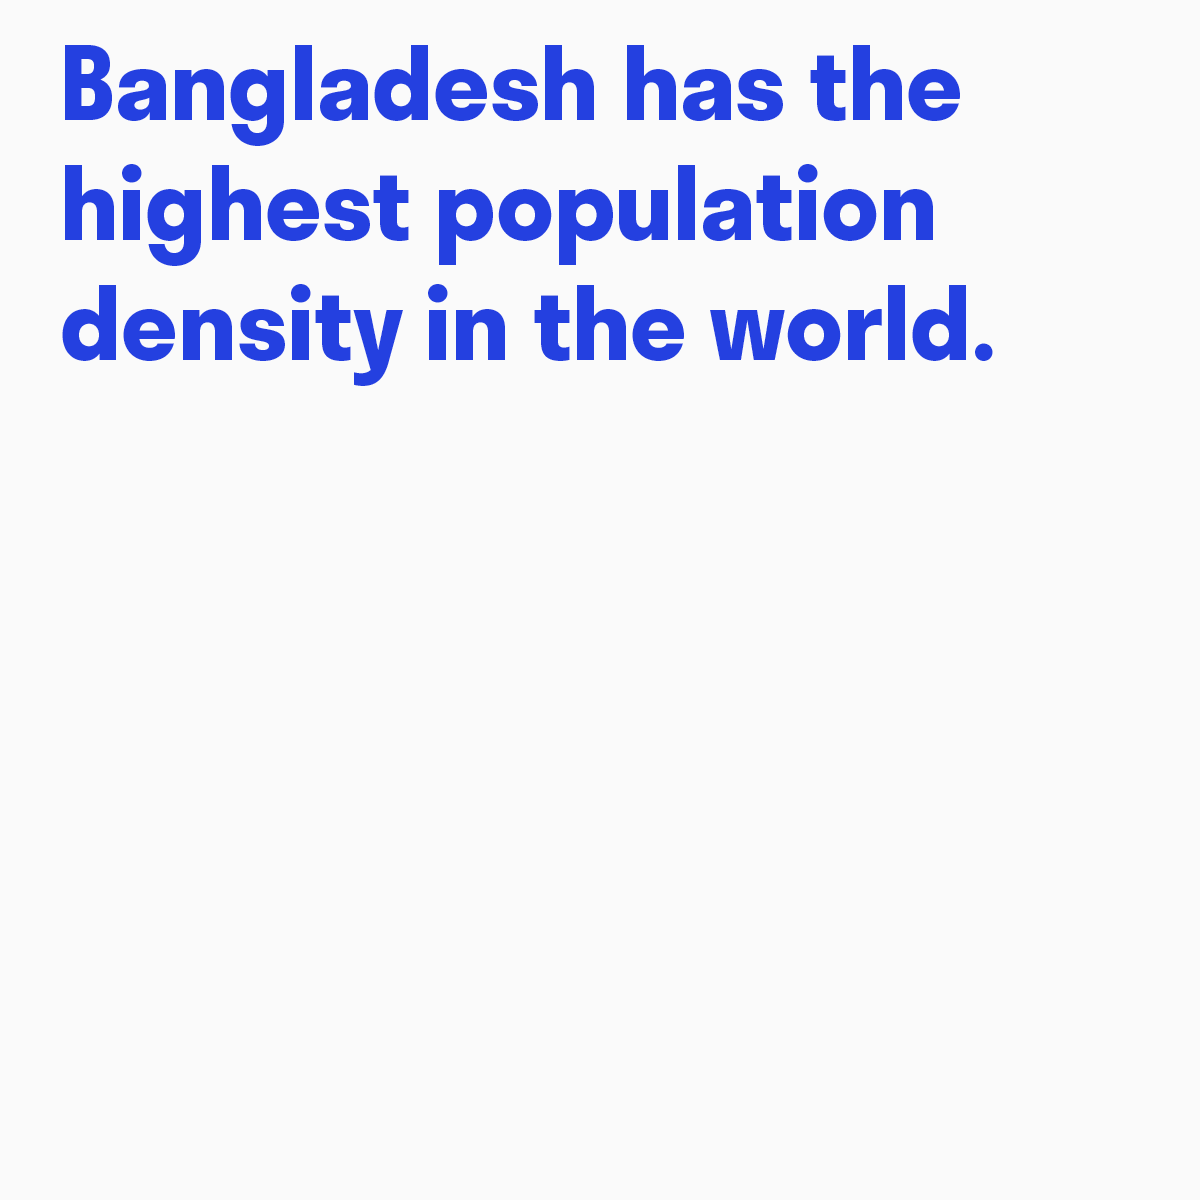 DripByDrip_FFW_Template_Quotes_Bangladesh_2.png